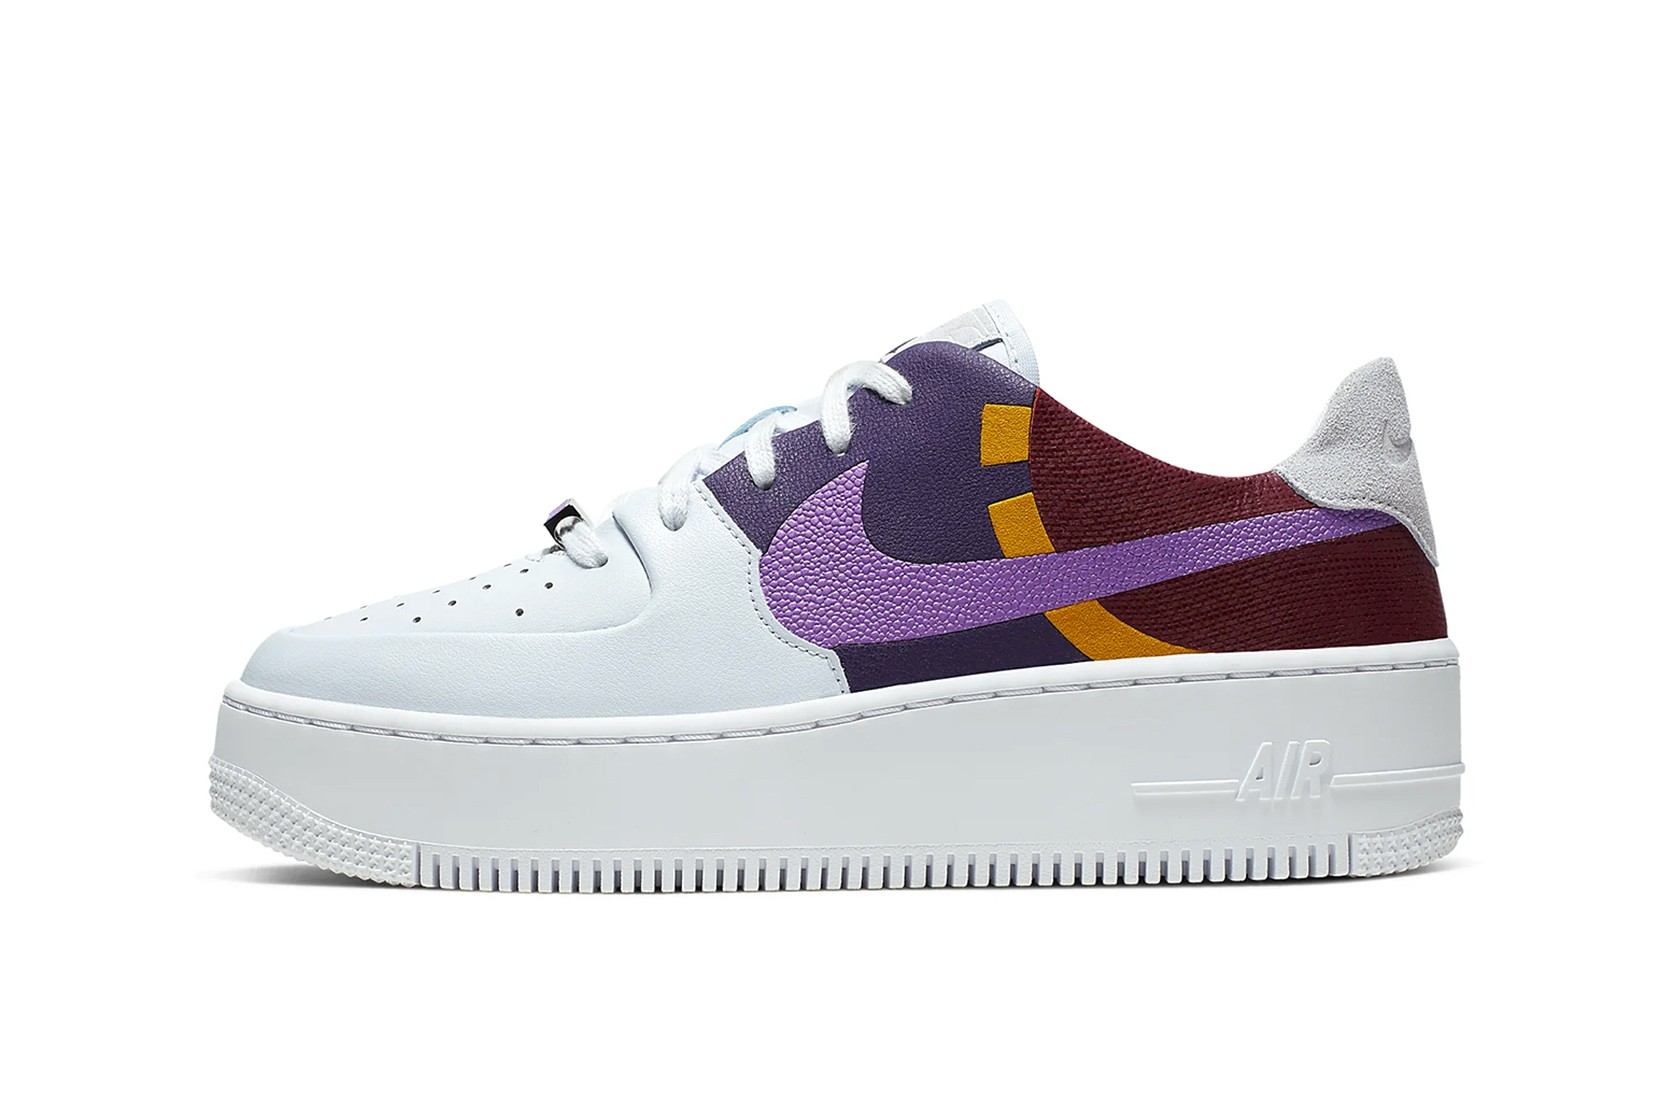 Nike's Basketball-Themed Air Force 1